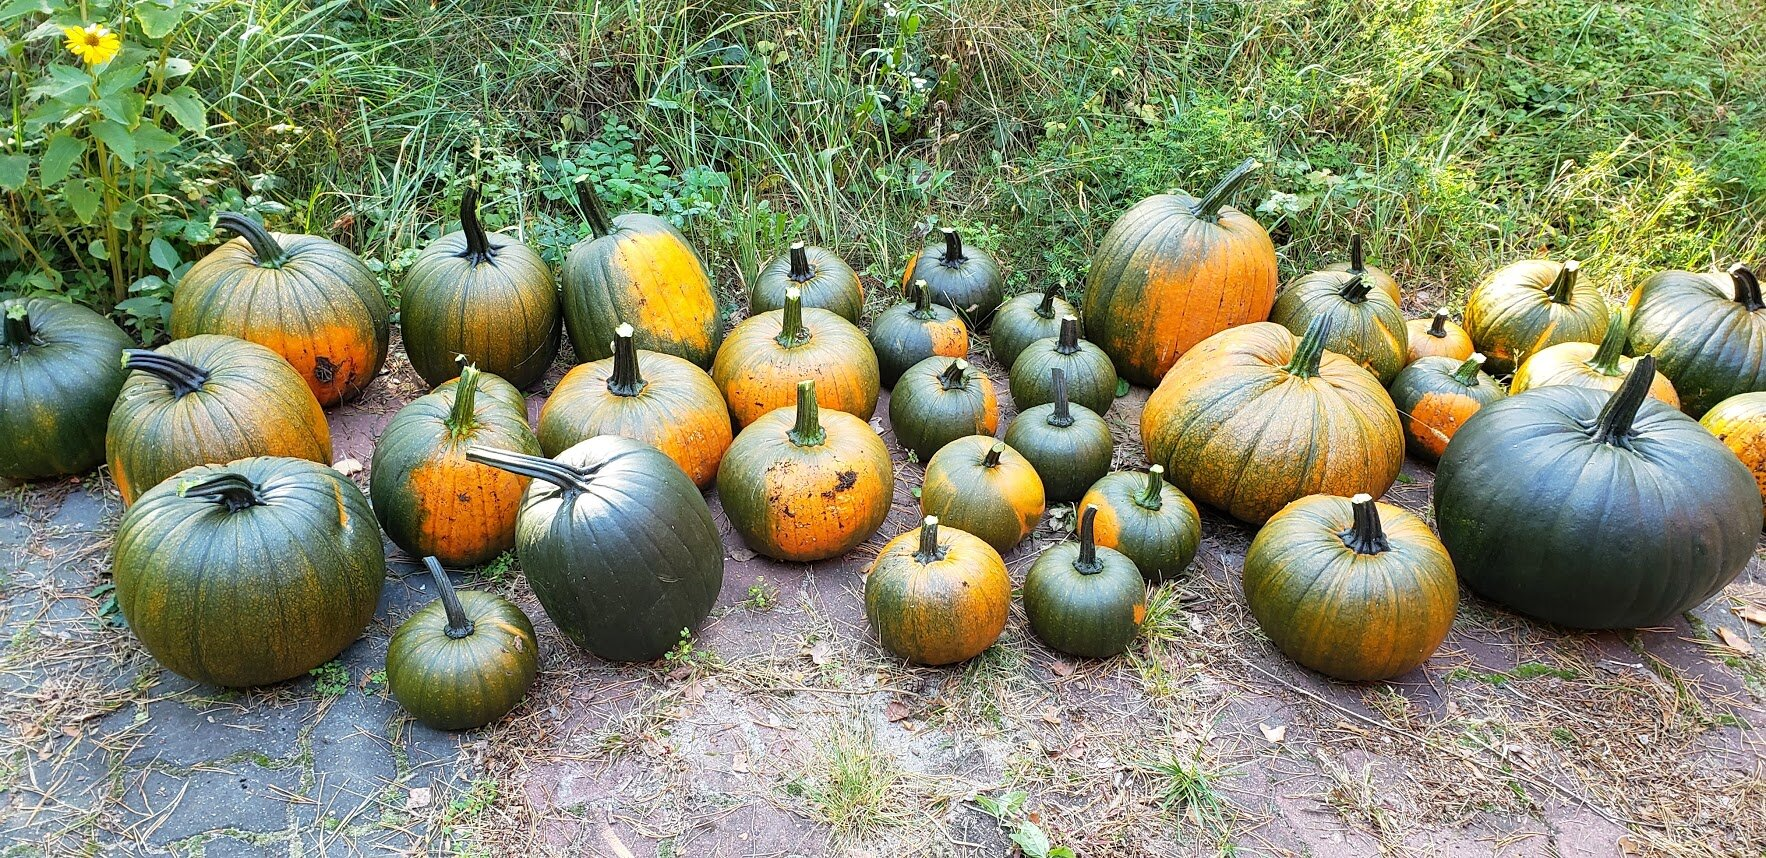 """There are two rather large 'squatty ones"""" - the big green one on the right and then to the left and back of it - one is turning orangish - also very squatty and big. There is a nice variation of sizes and shapes."""